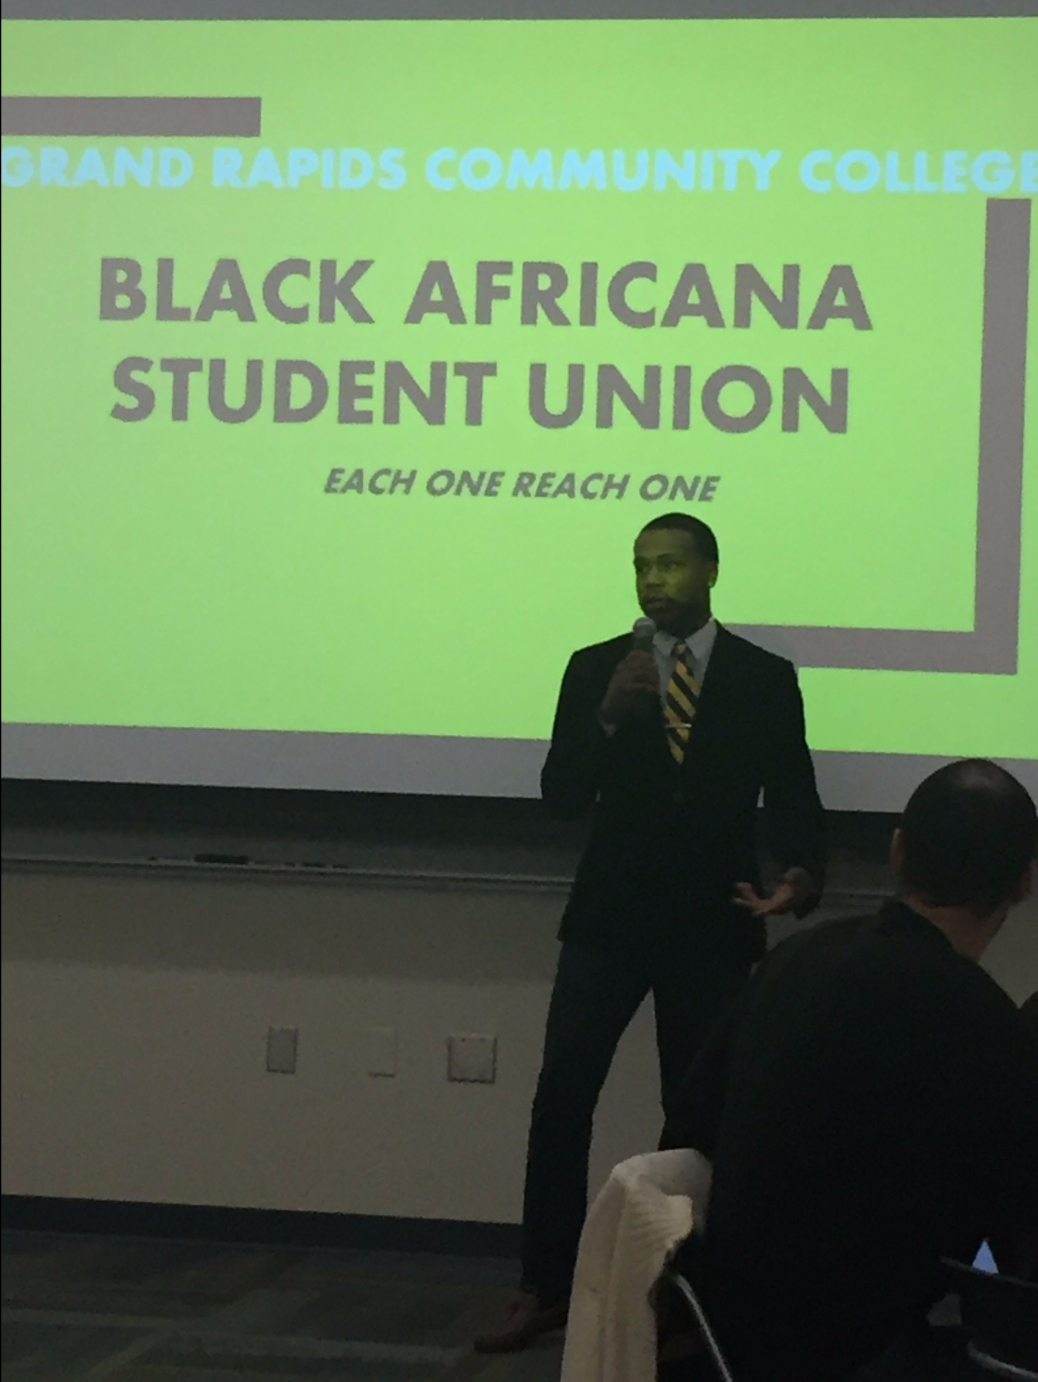 "The president of the Black Africana Student Union talks into a microphone as he stands in front of a video screen that says: ""Grand Rapids Community College. Black Africana Student Union. Each one reach one."""